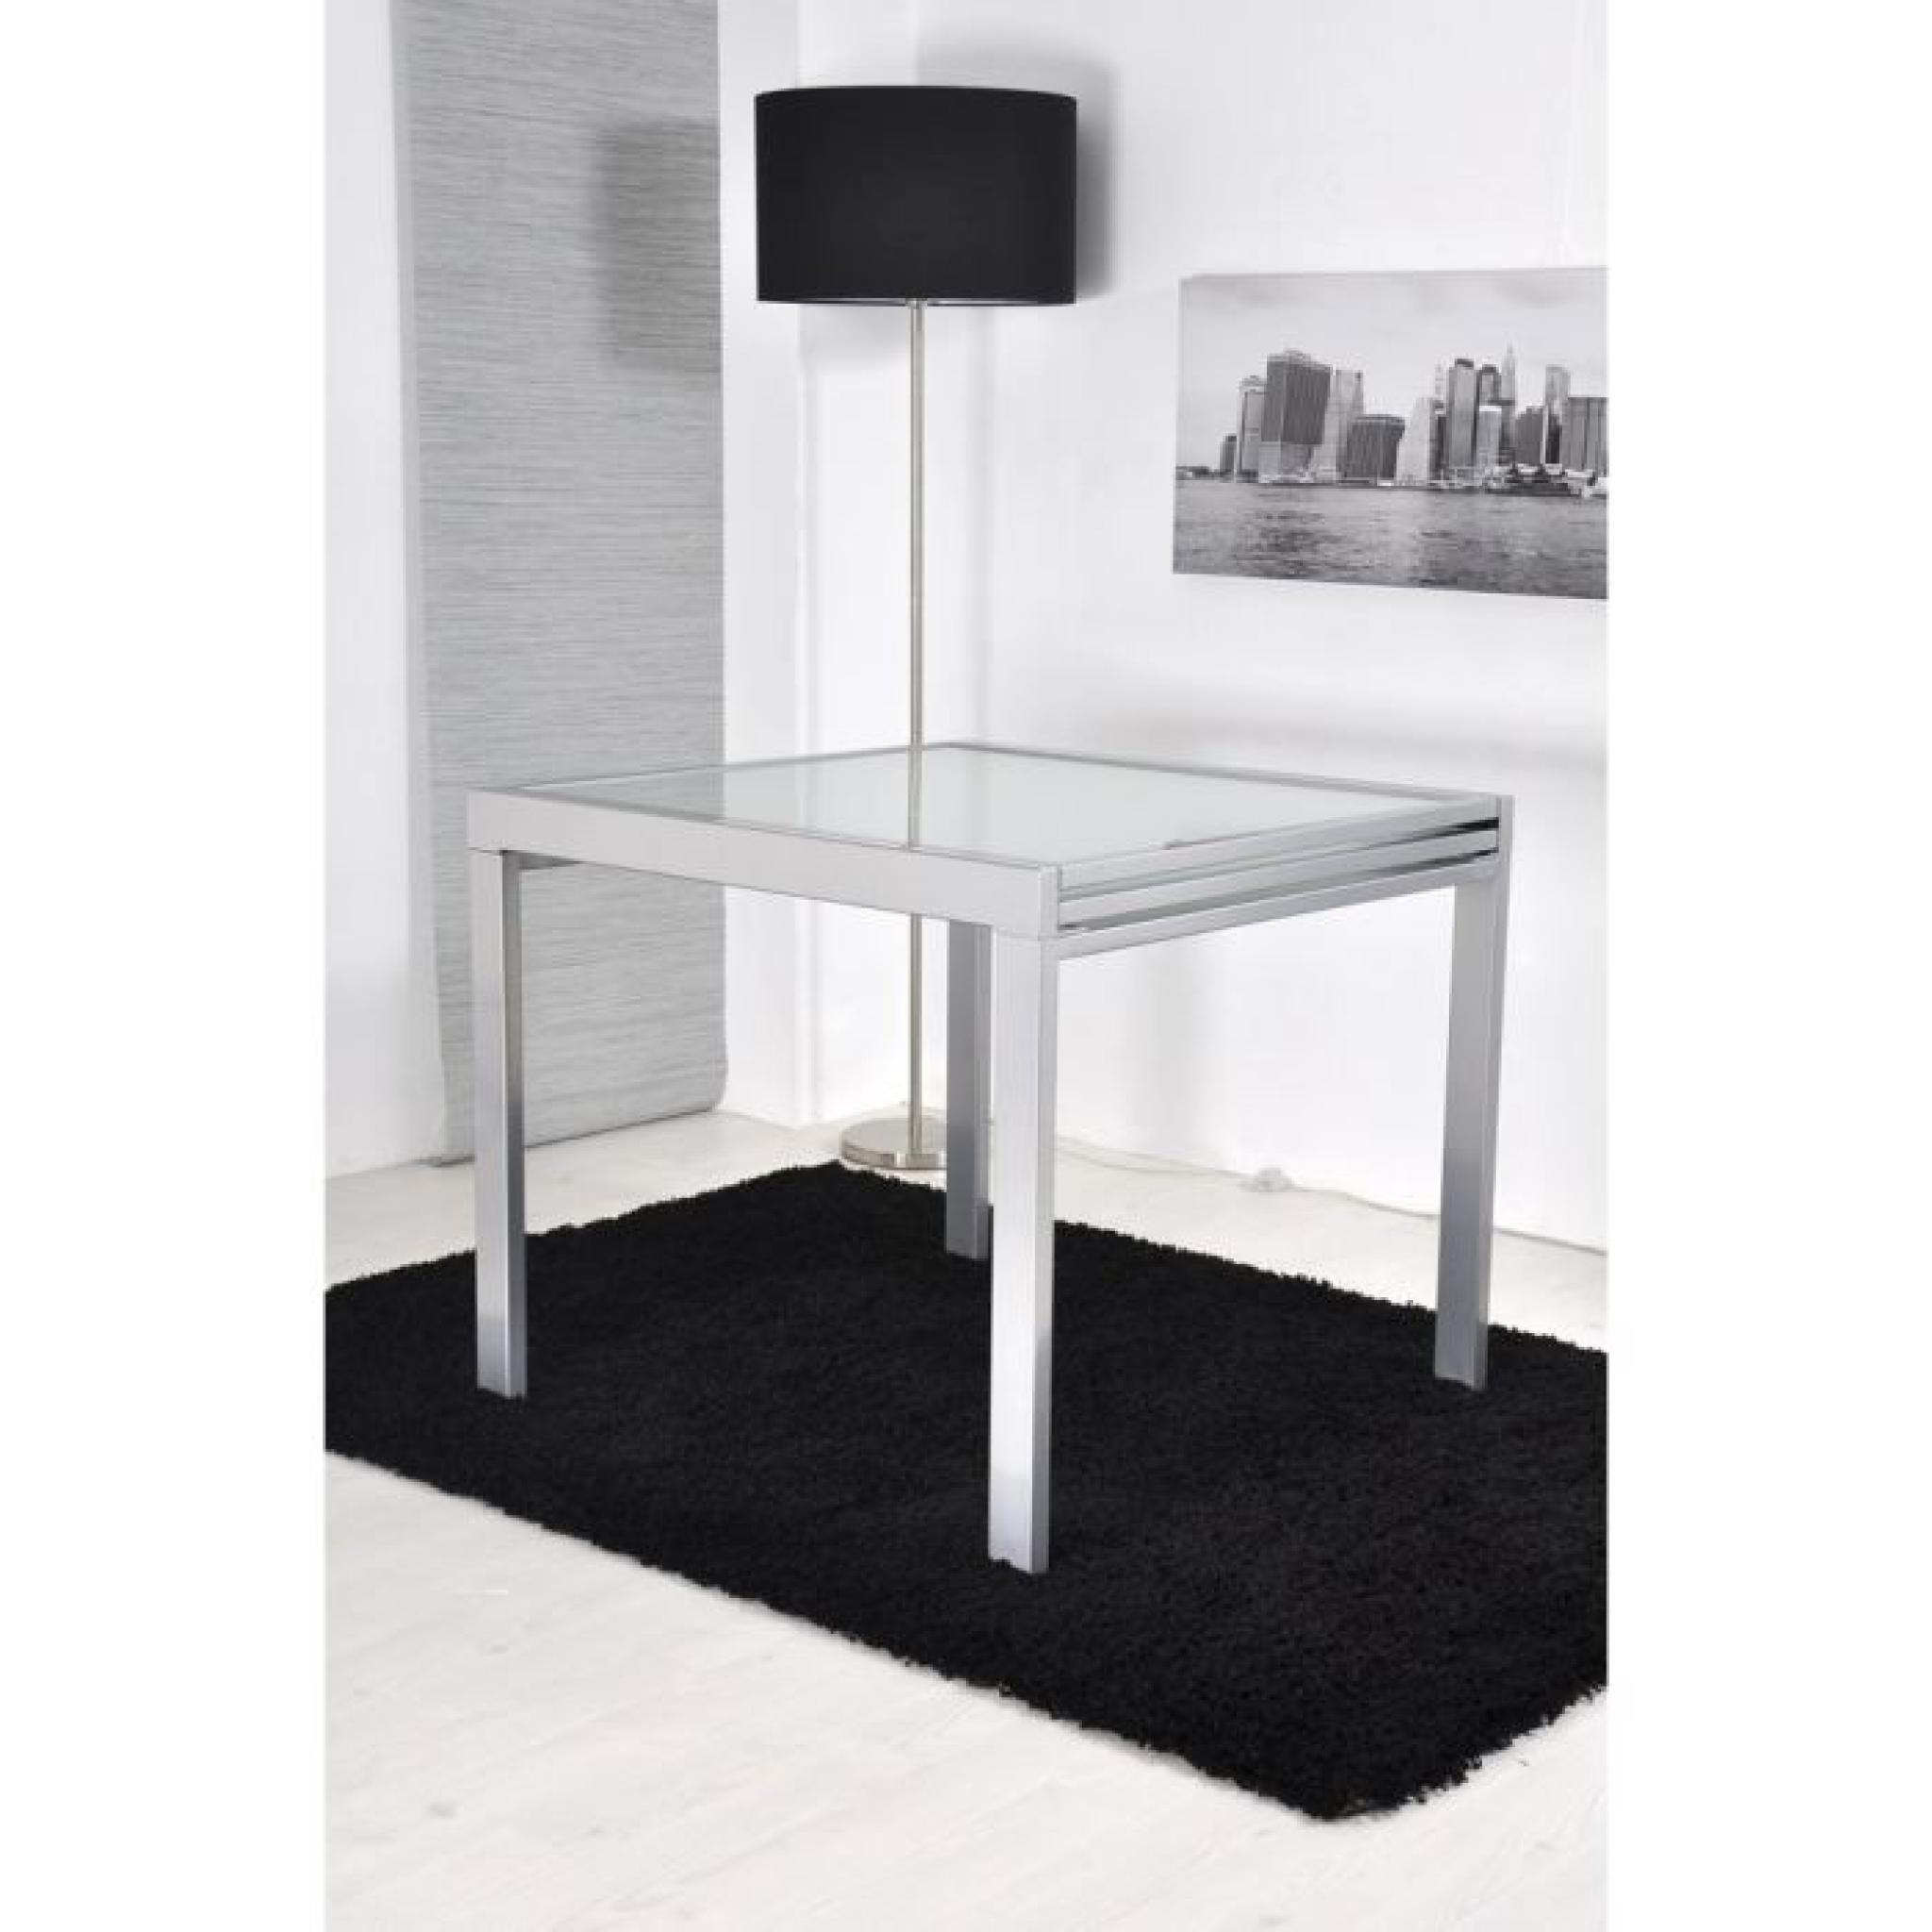 47a98c95ed3abf EXTEND Table extensible grise 90 180cm - Achat Vente table salle a ...